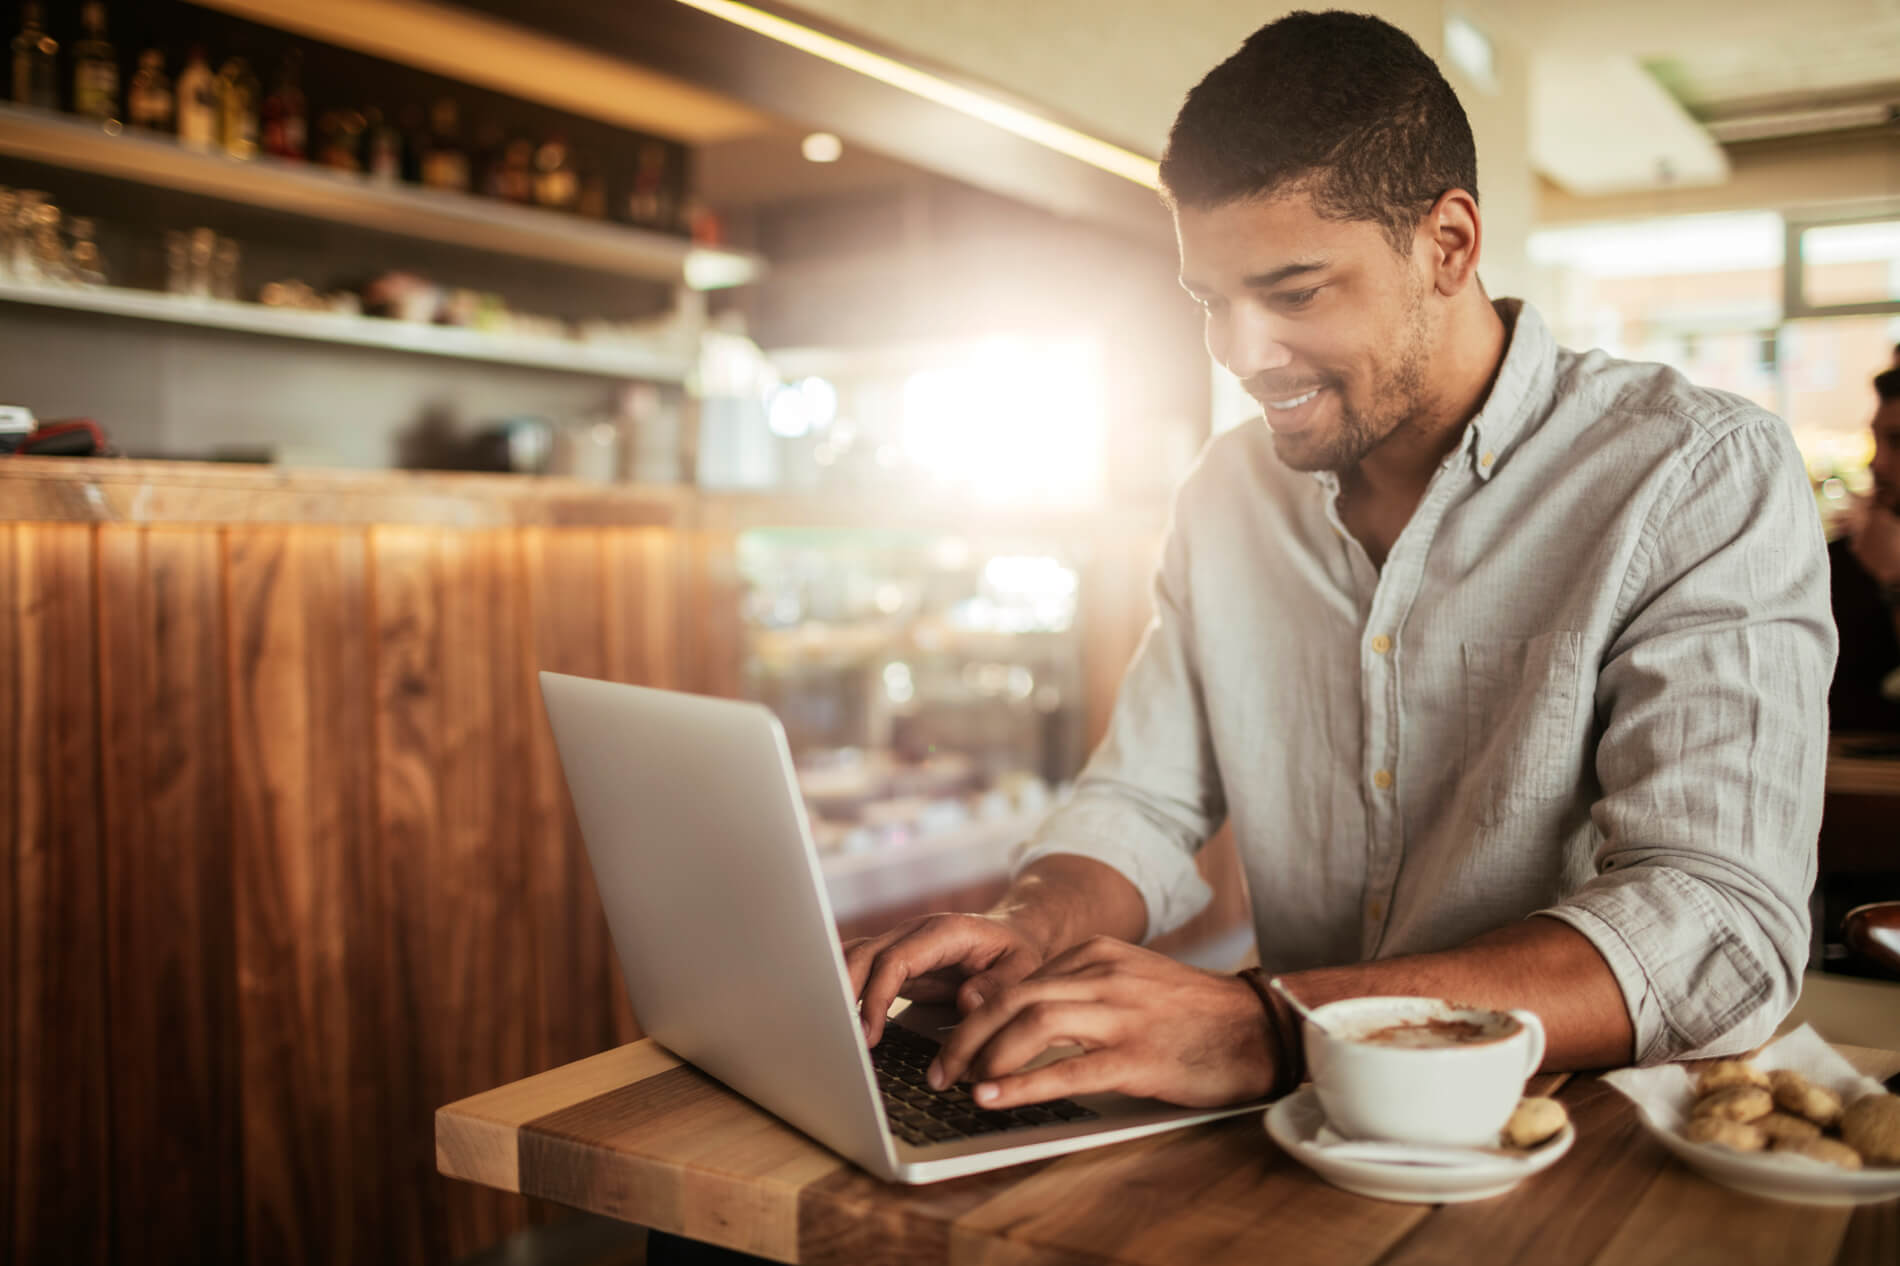 Man working on laptop with coffee and pastries in coffee shop